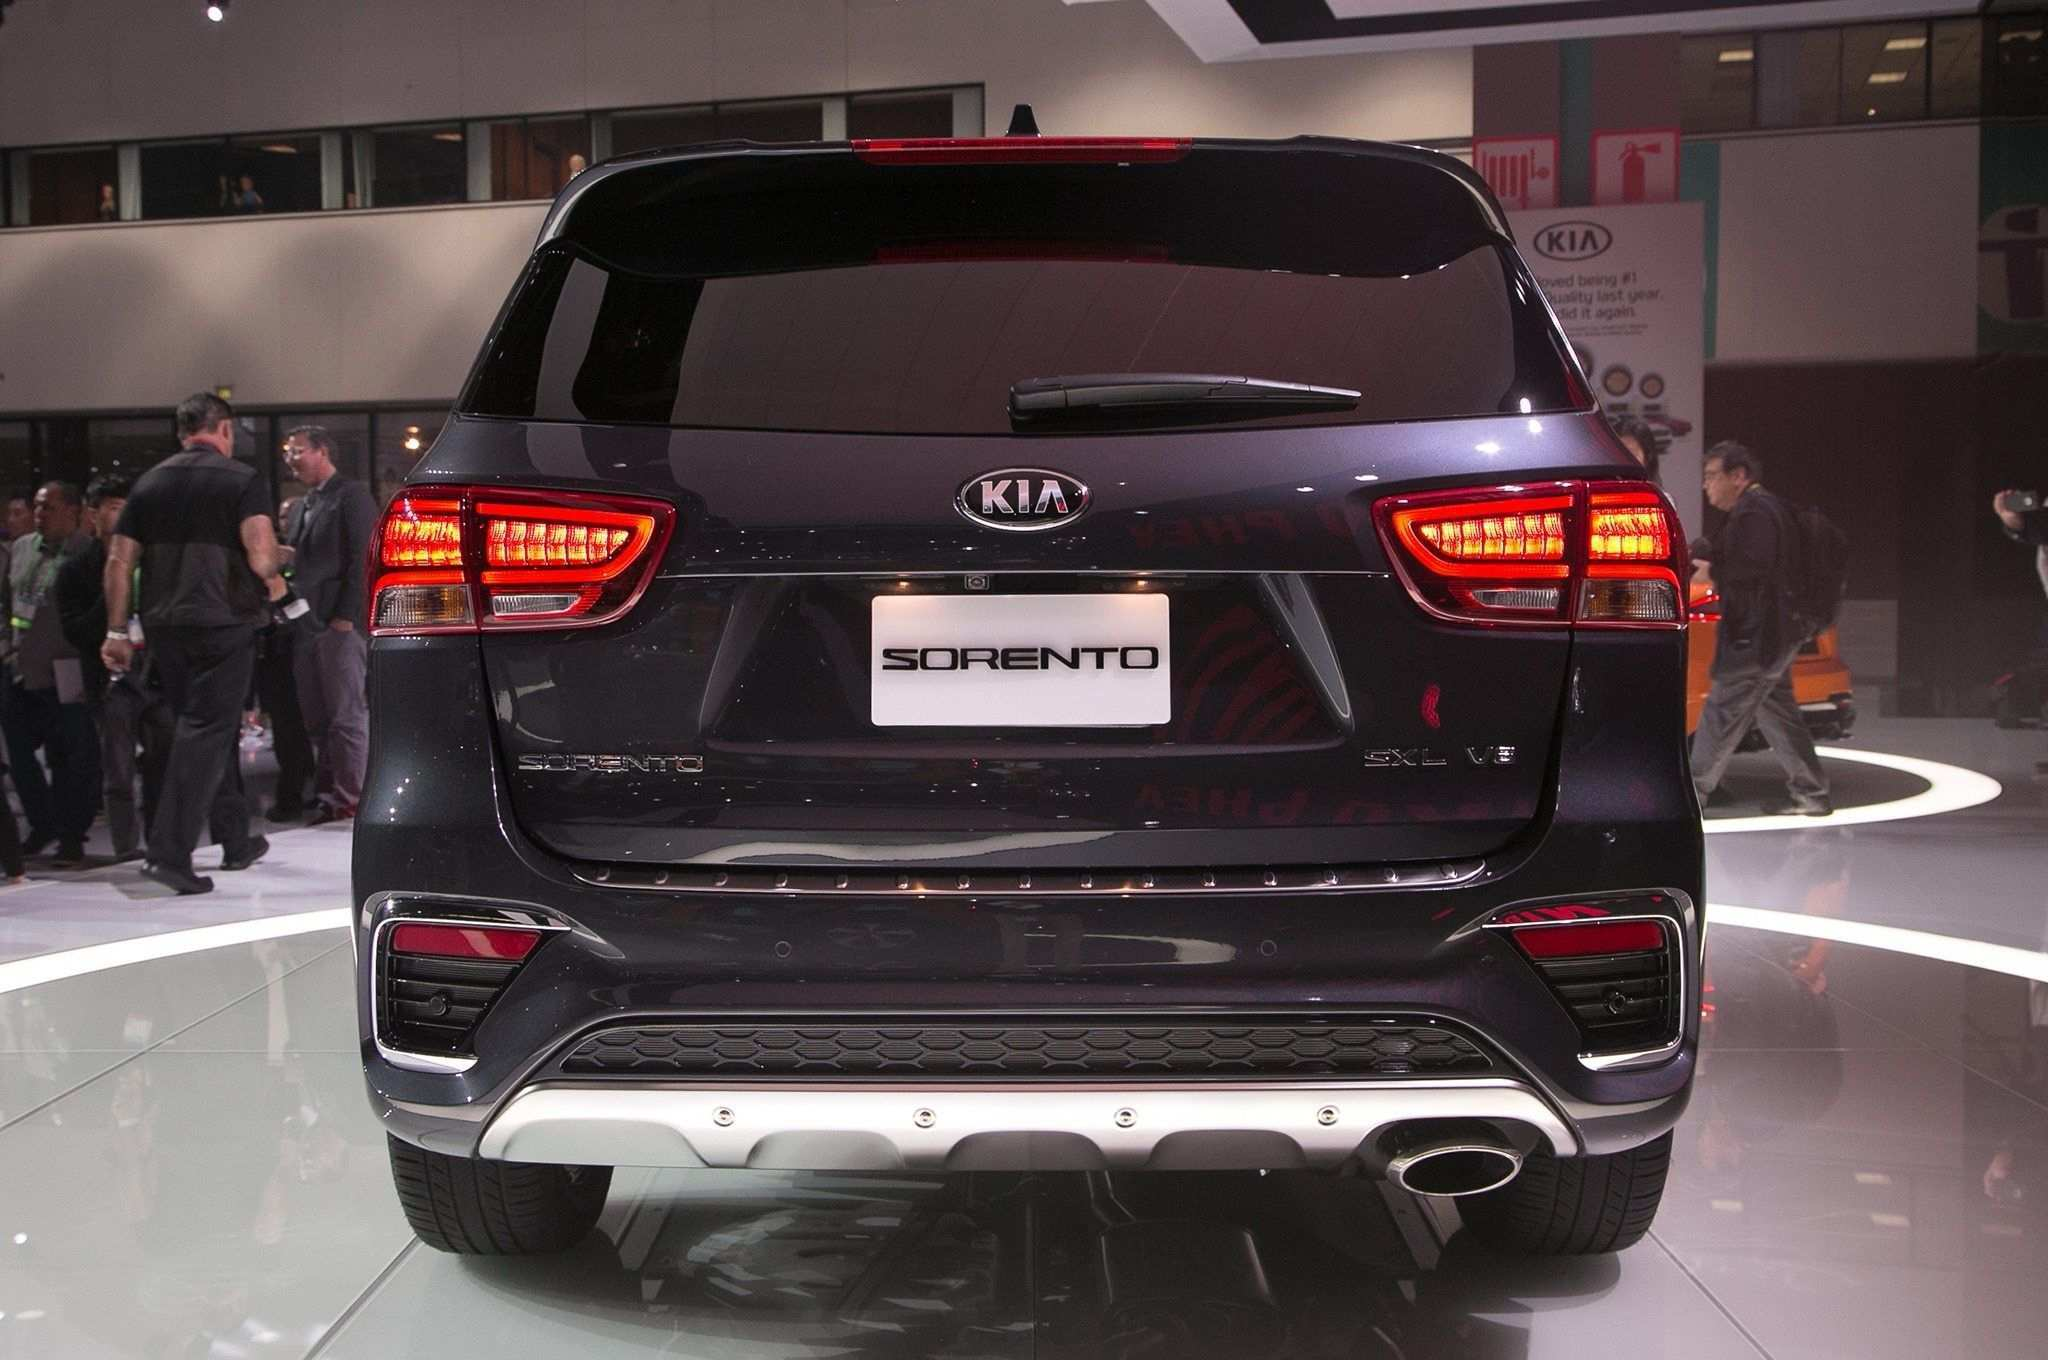 74 Gallery of Kia Lineup 2019 Style with Kia Lineup 2019